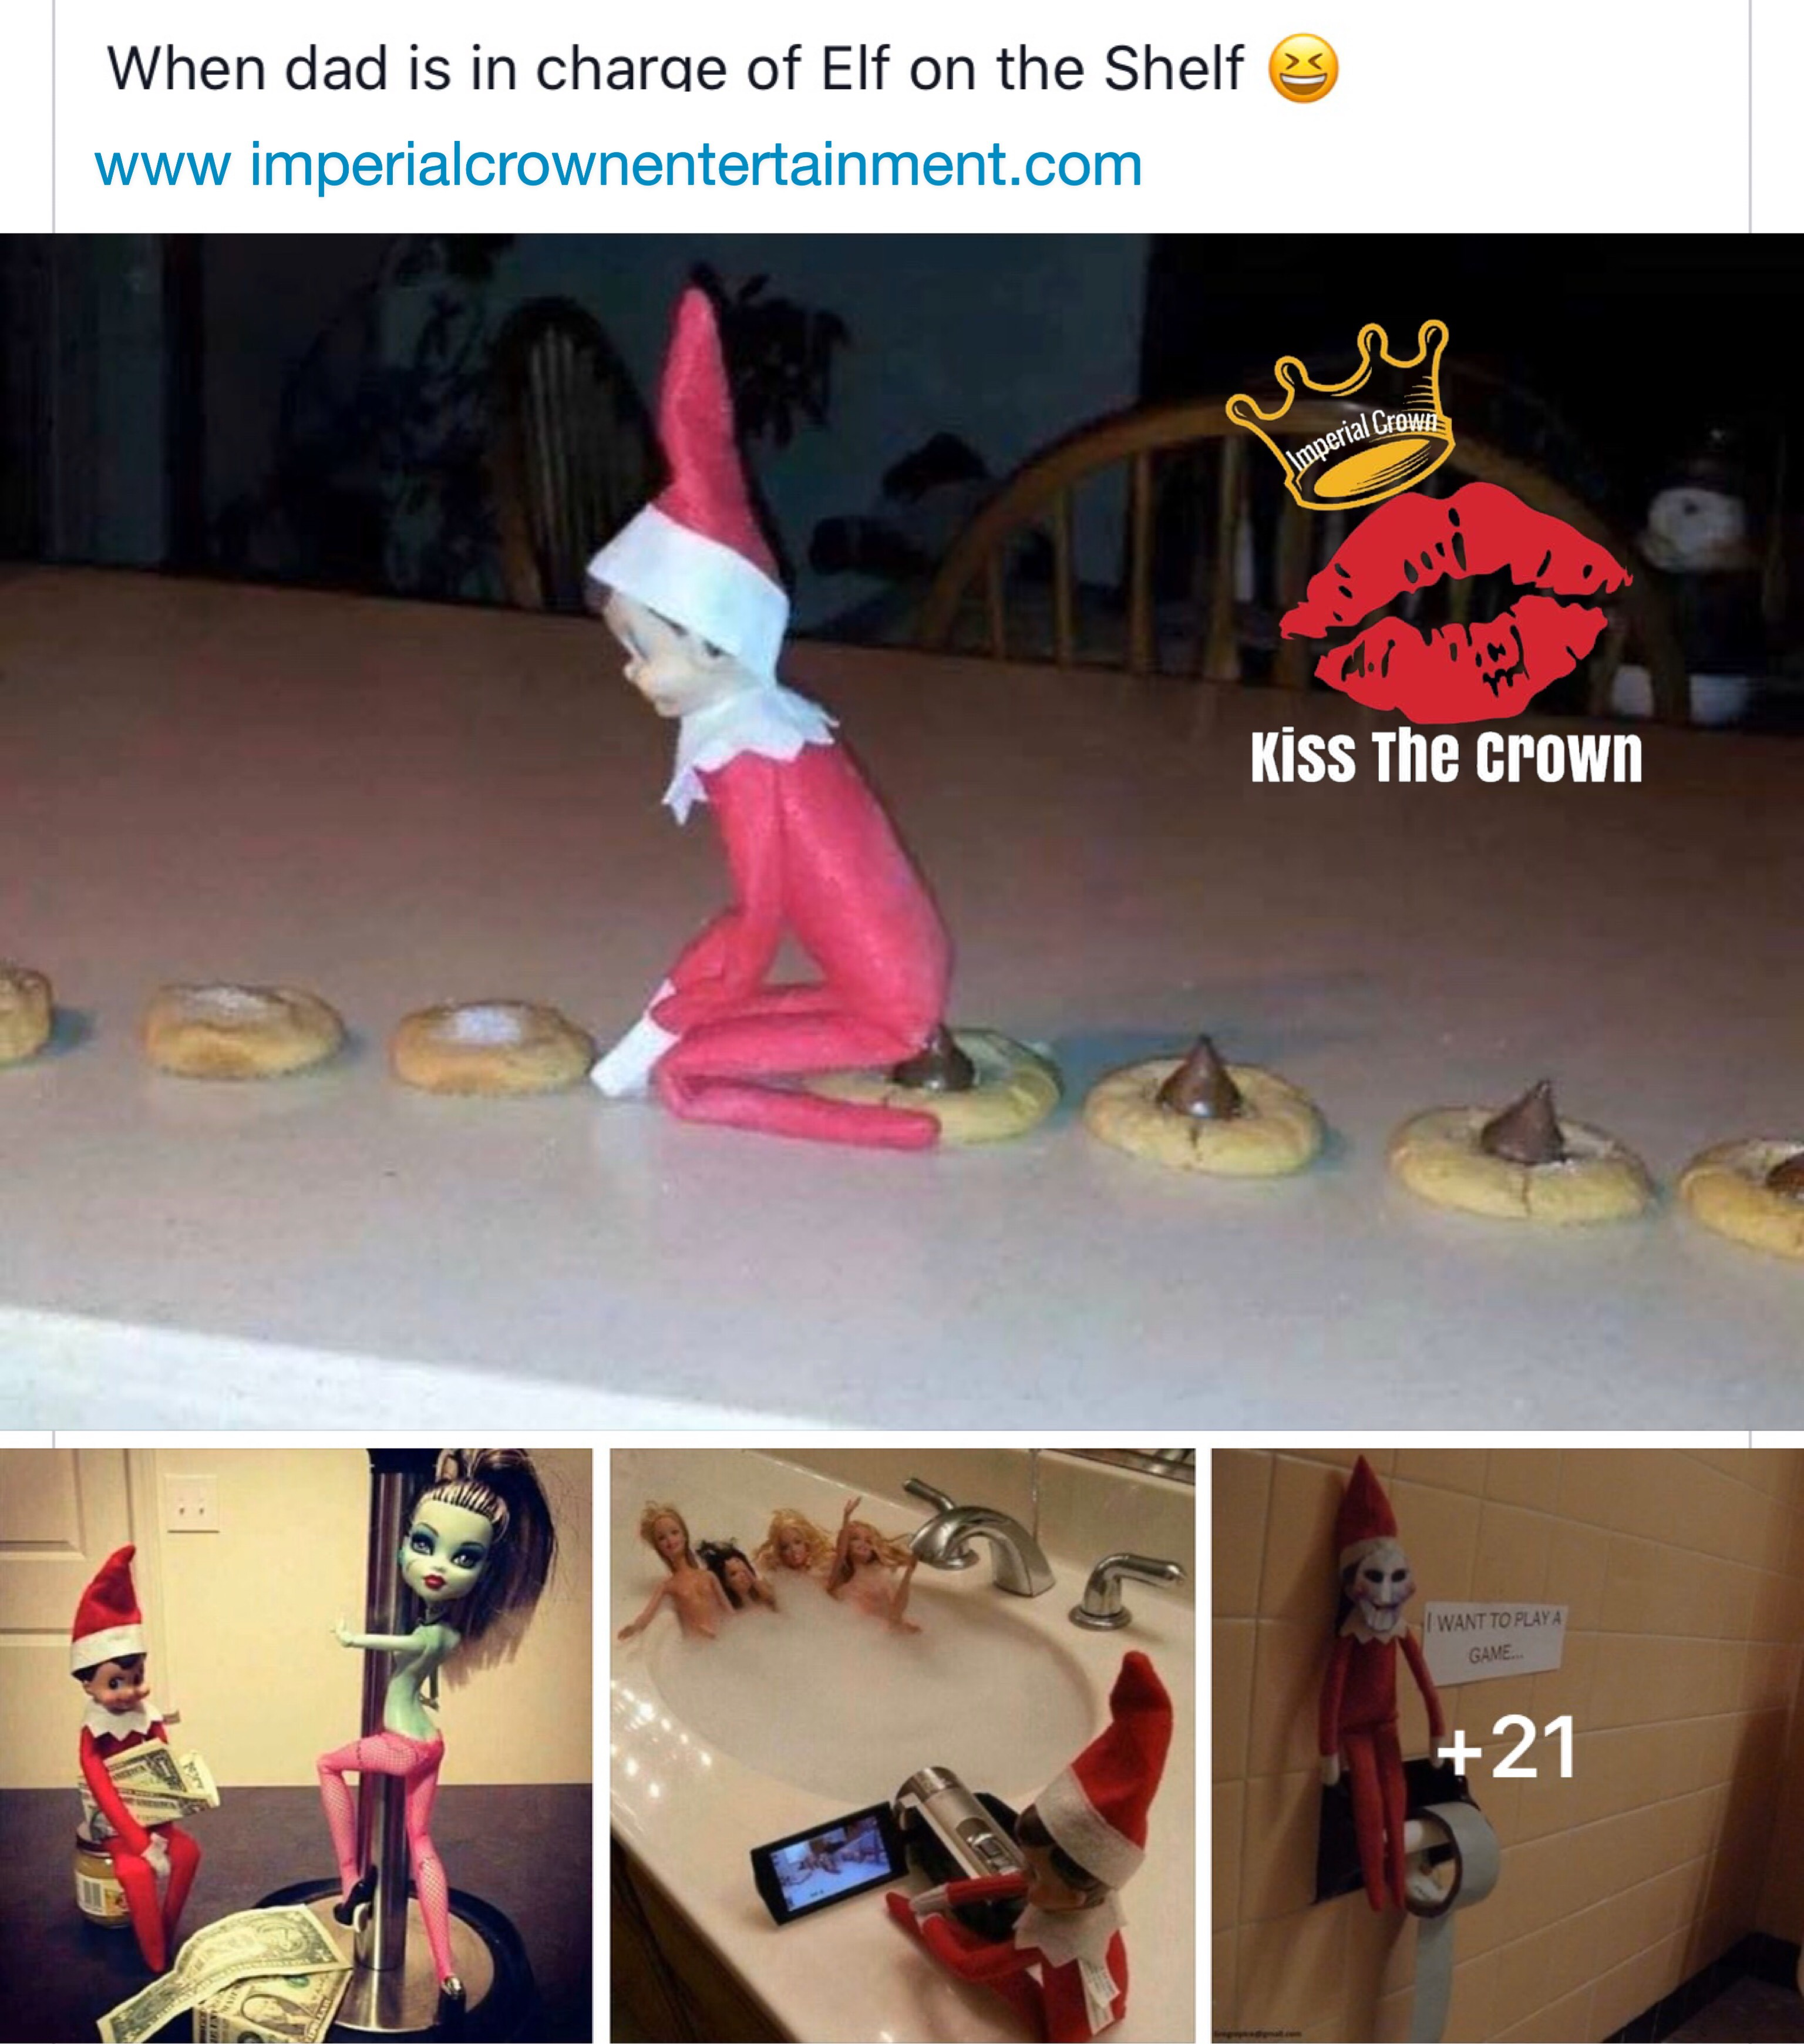 When dad is in charge of elf on the shelf